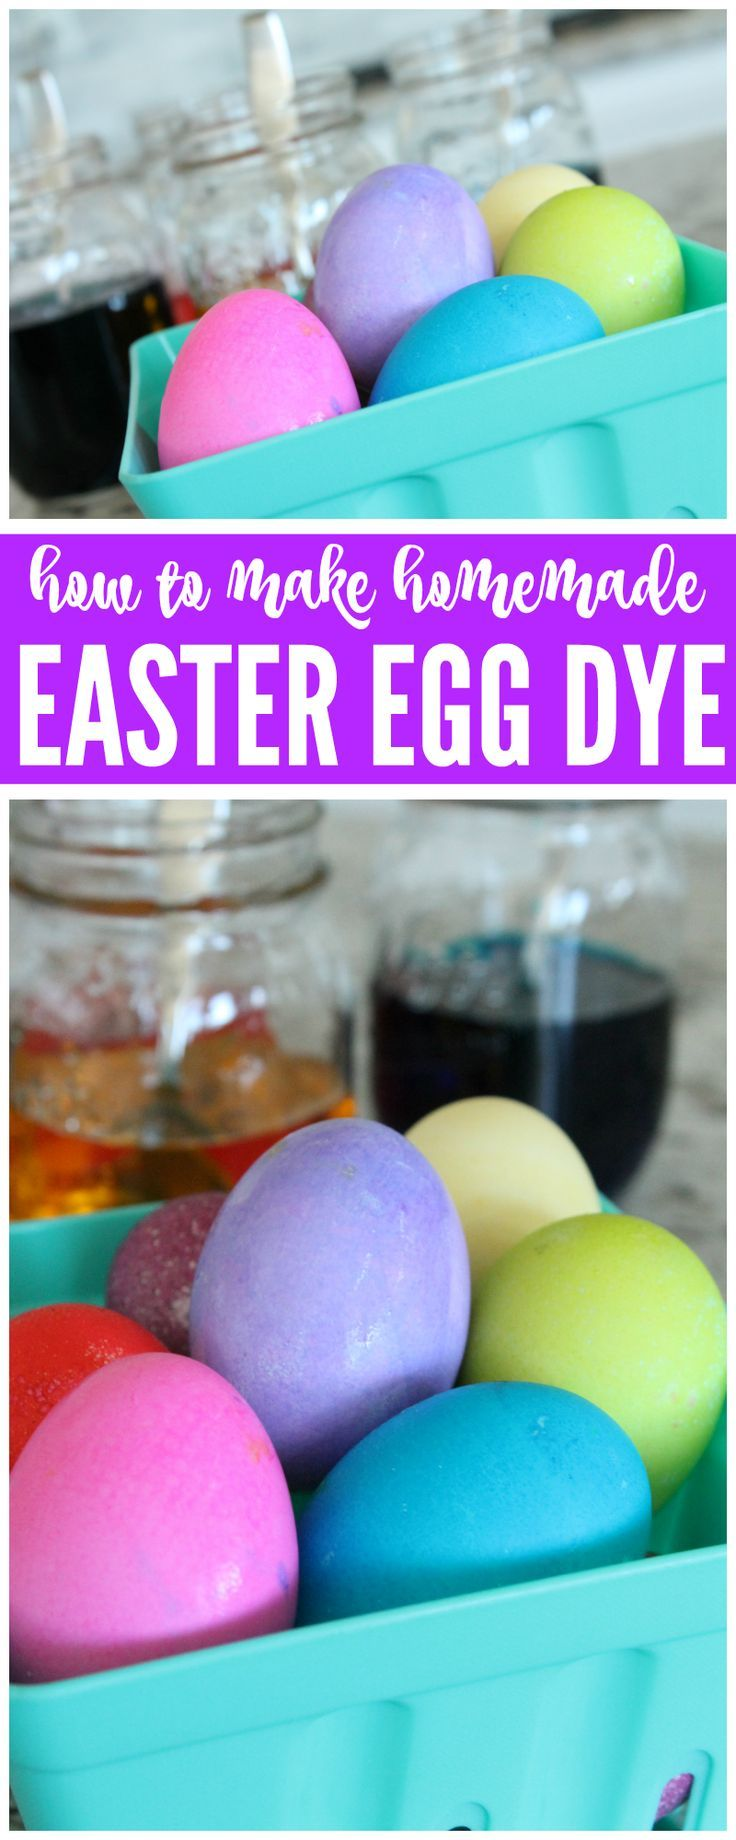 Homemade easter egg dye recipe this is a fun way to decorate eggs homemade easter egg dye recipe this is a fun way to decorate eggs and diy forumfinder Images